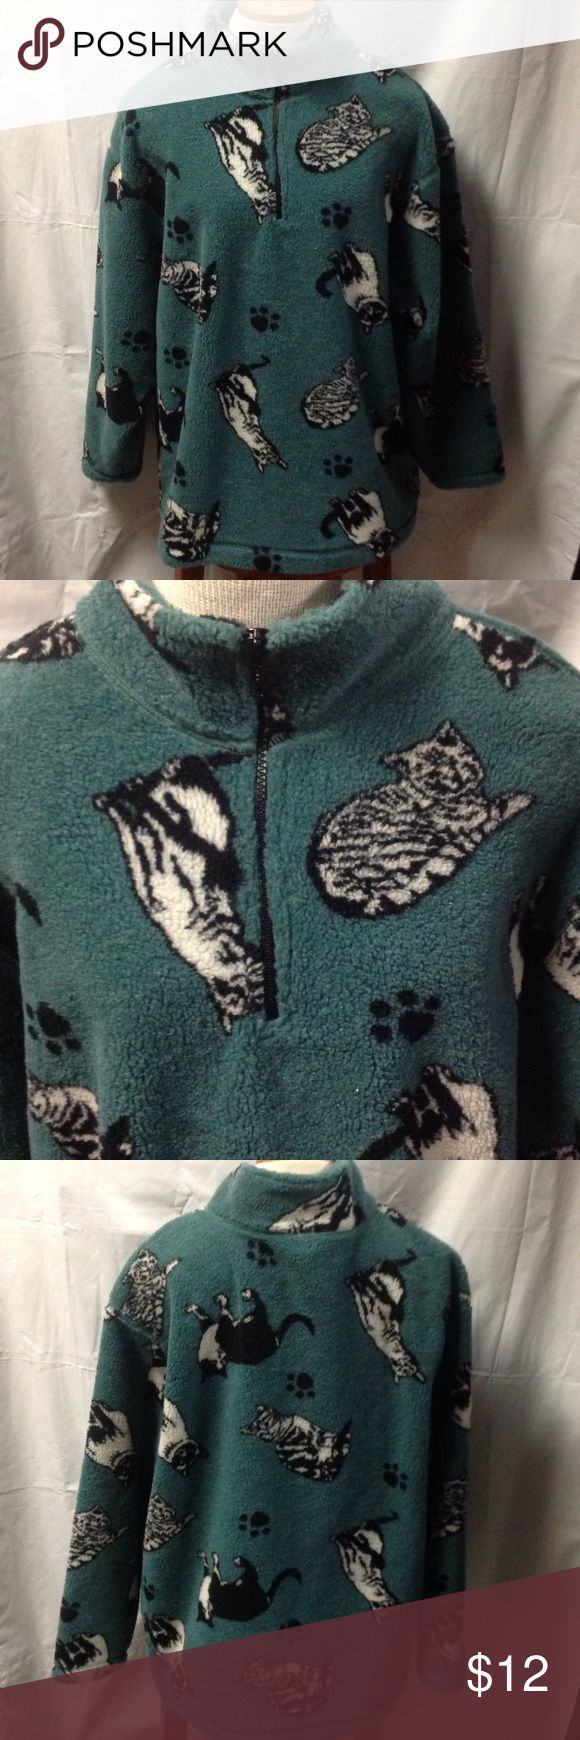 "JUST IN⭐️Cat Lovers half zip fleece. Size Large Cute gift for the ""Cat Lady"". Teal greenish background, half zip, black and white cats and cat prints. Measures approx. 28"" in length, sleeves measure approx. 21"", shoulders 7"" each. Bust measures approx. 40"". Good pre-loved condition. Winona Tops Sweatshirts & Hoodies"